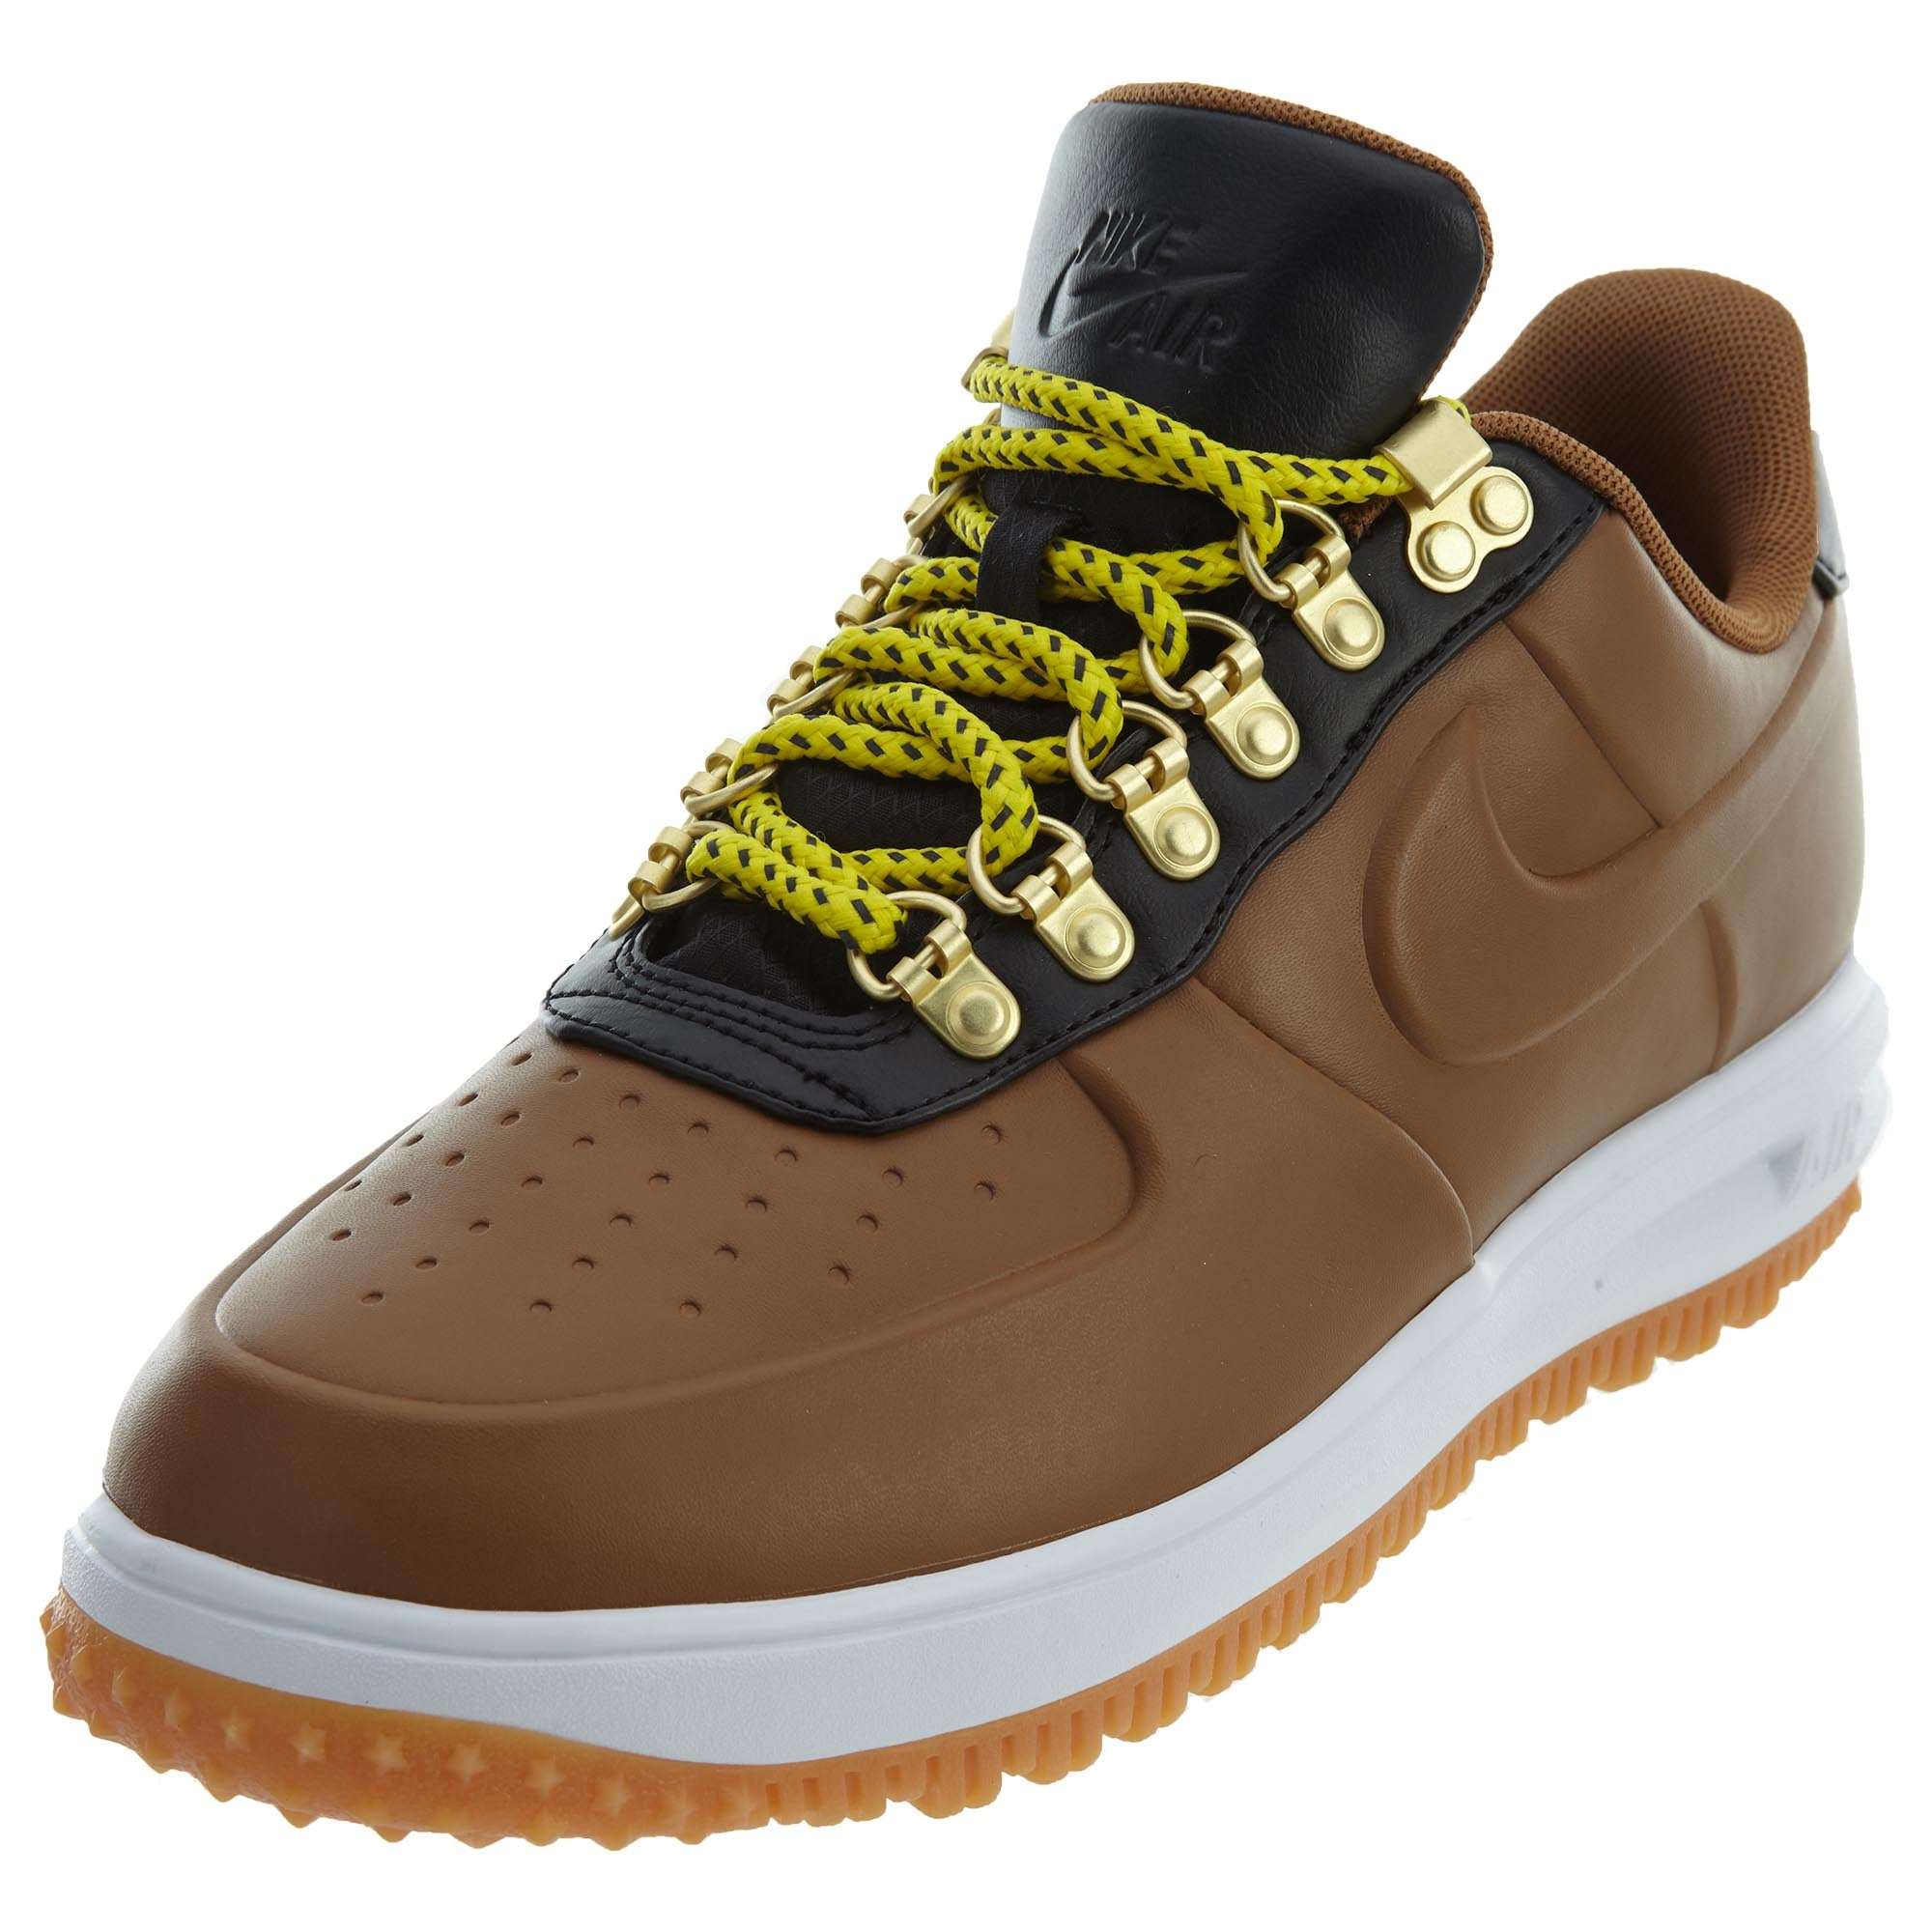 Men's Nike LF1 Duckboot Low TXT